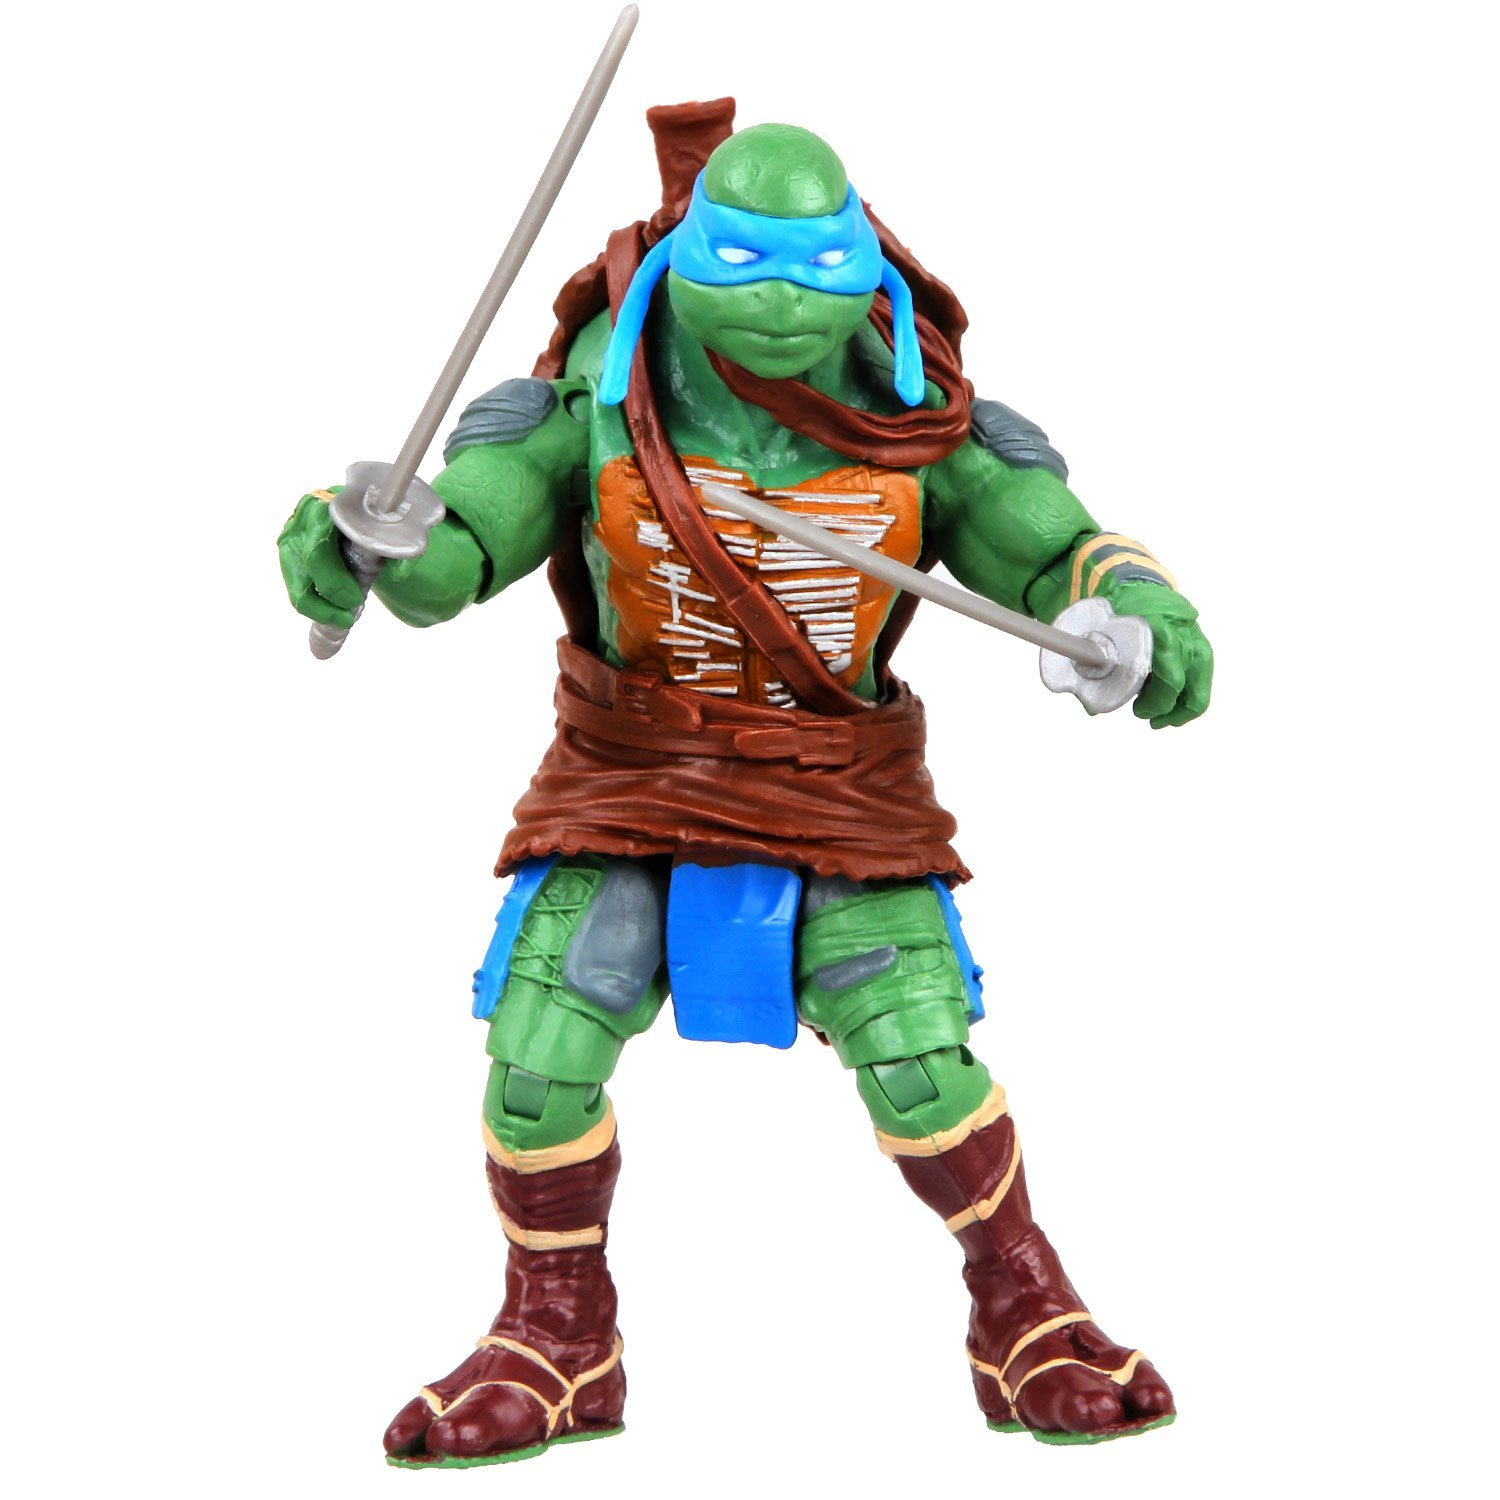 Teenage Mutant Ninja Turtles 2014 Movie Leonardo Basic Action Figure Walmart Com Walmart Com